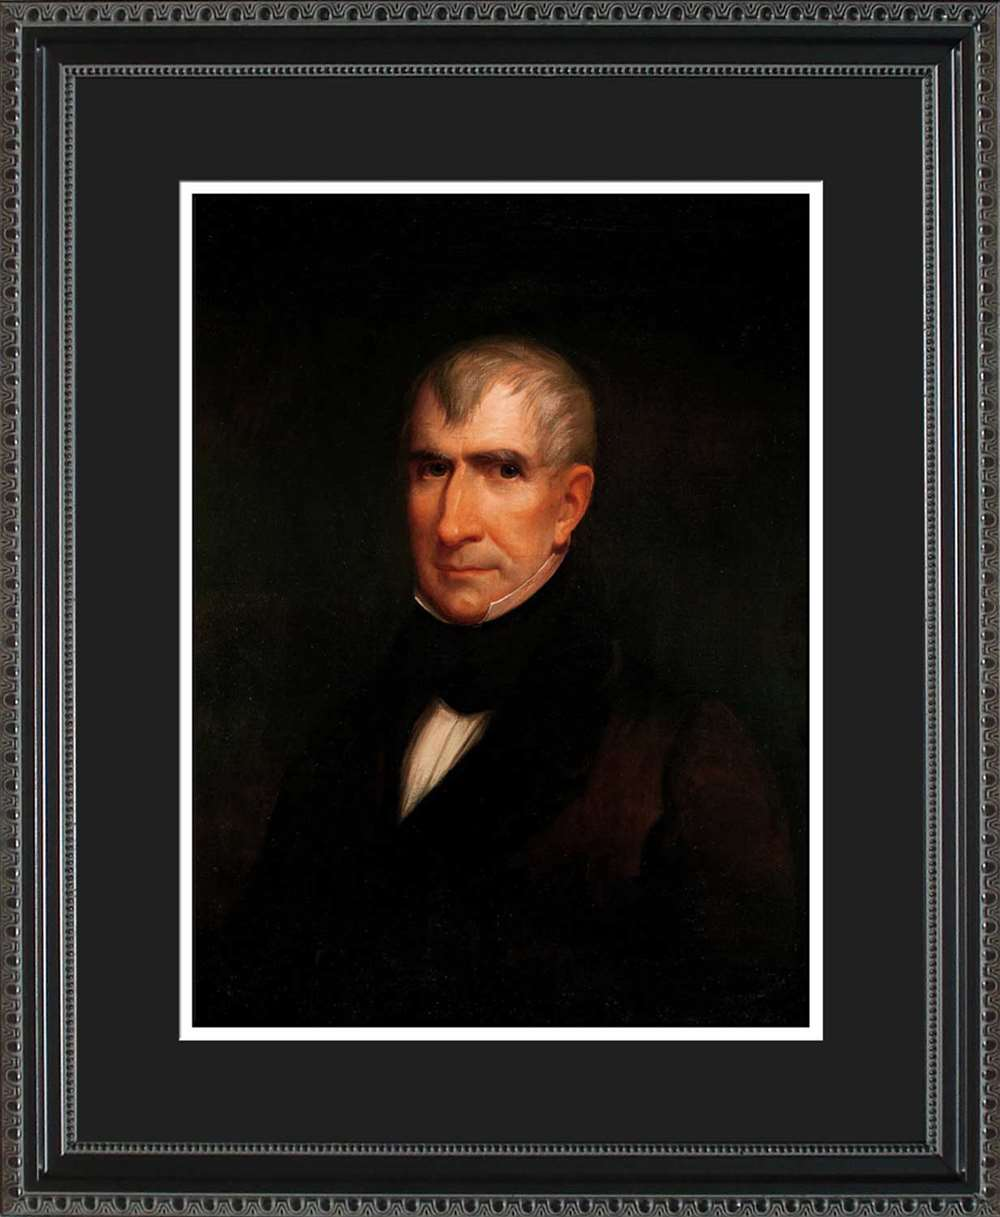 William Henry Harrison Official President Portrait, 16x20